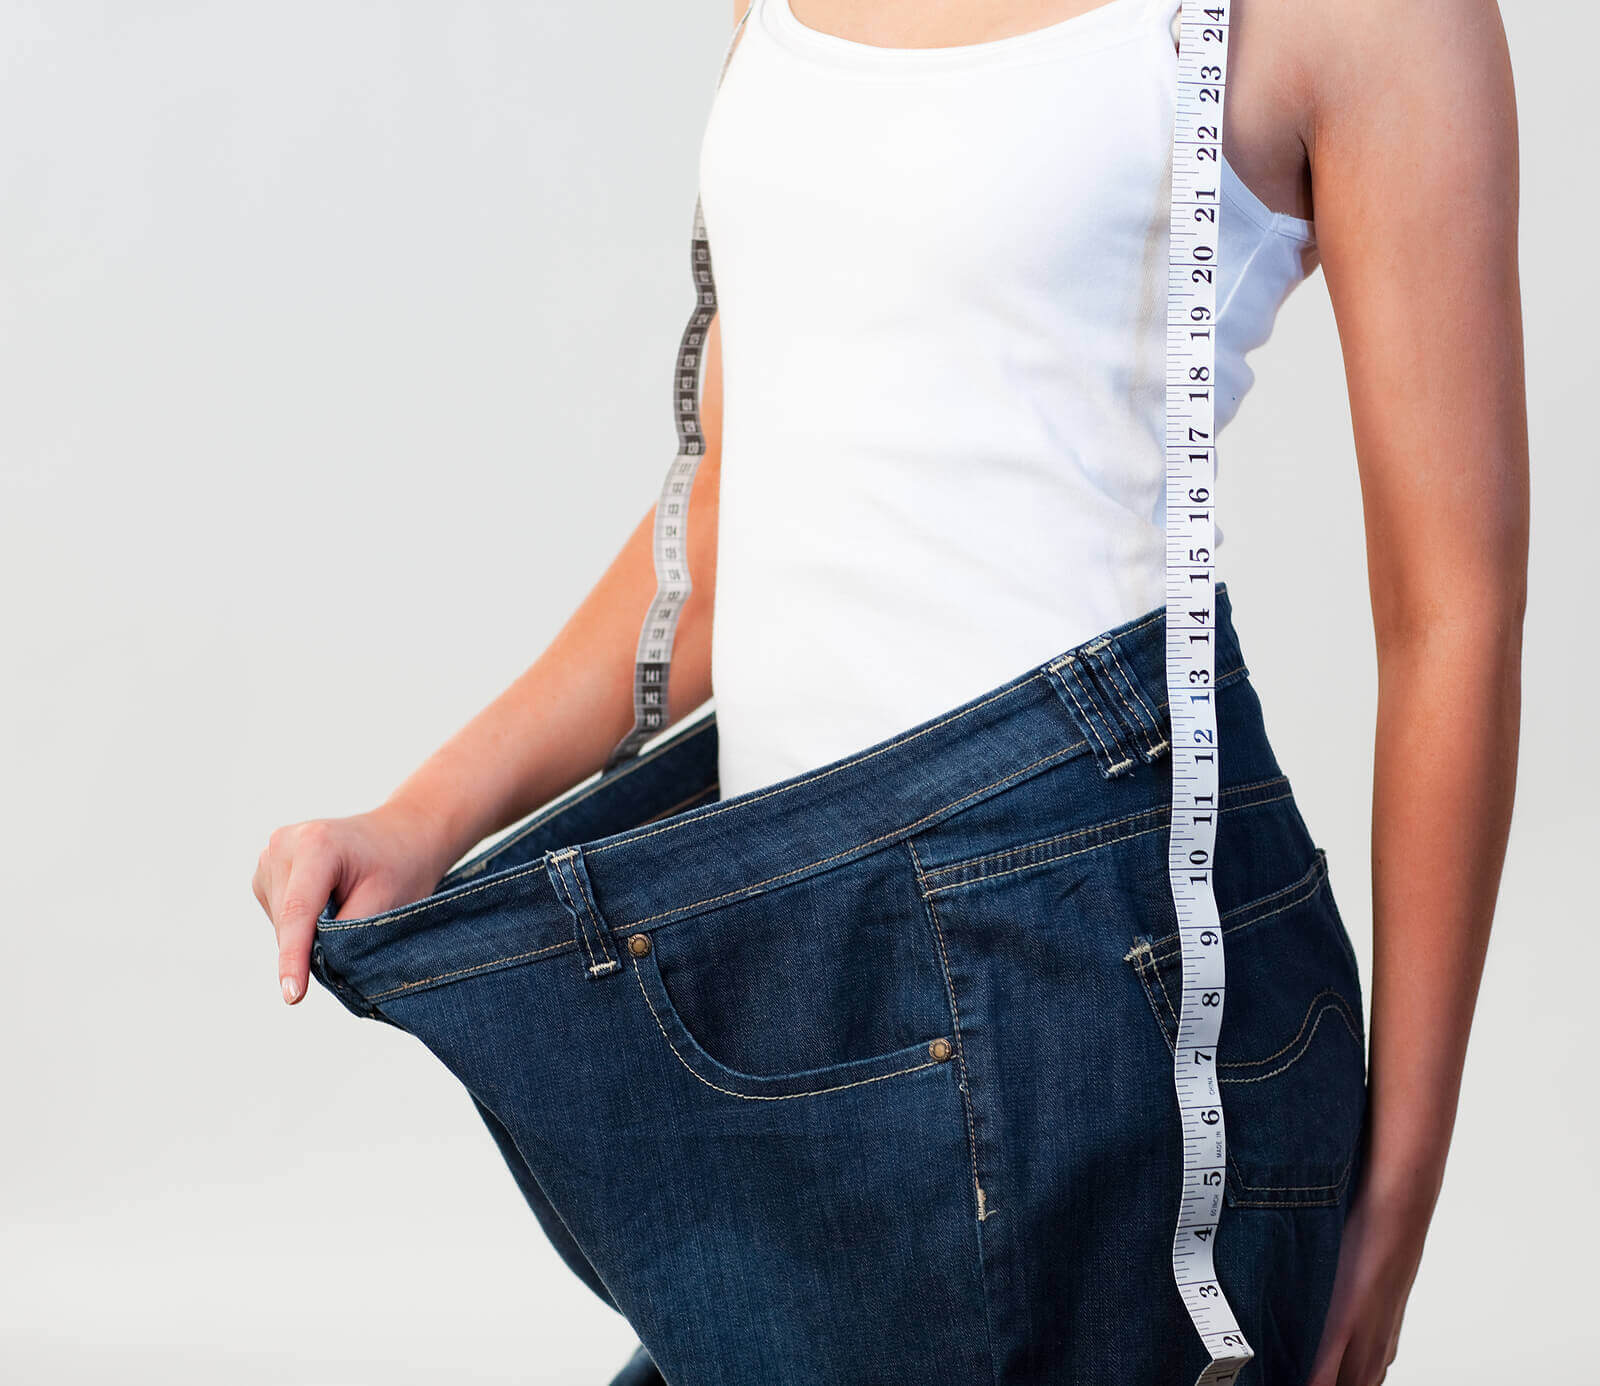 A thin woman standing in a large pair of jeans.